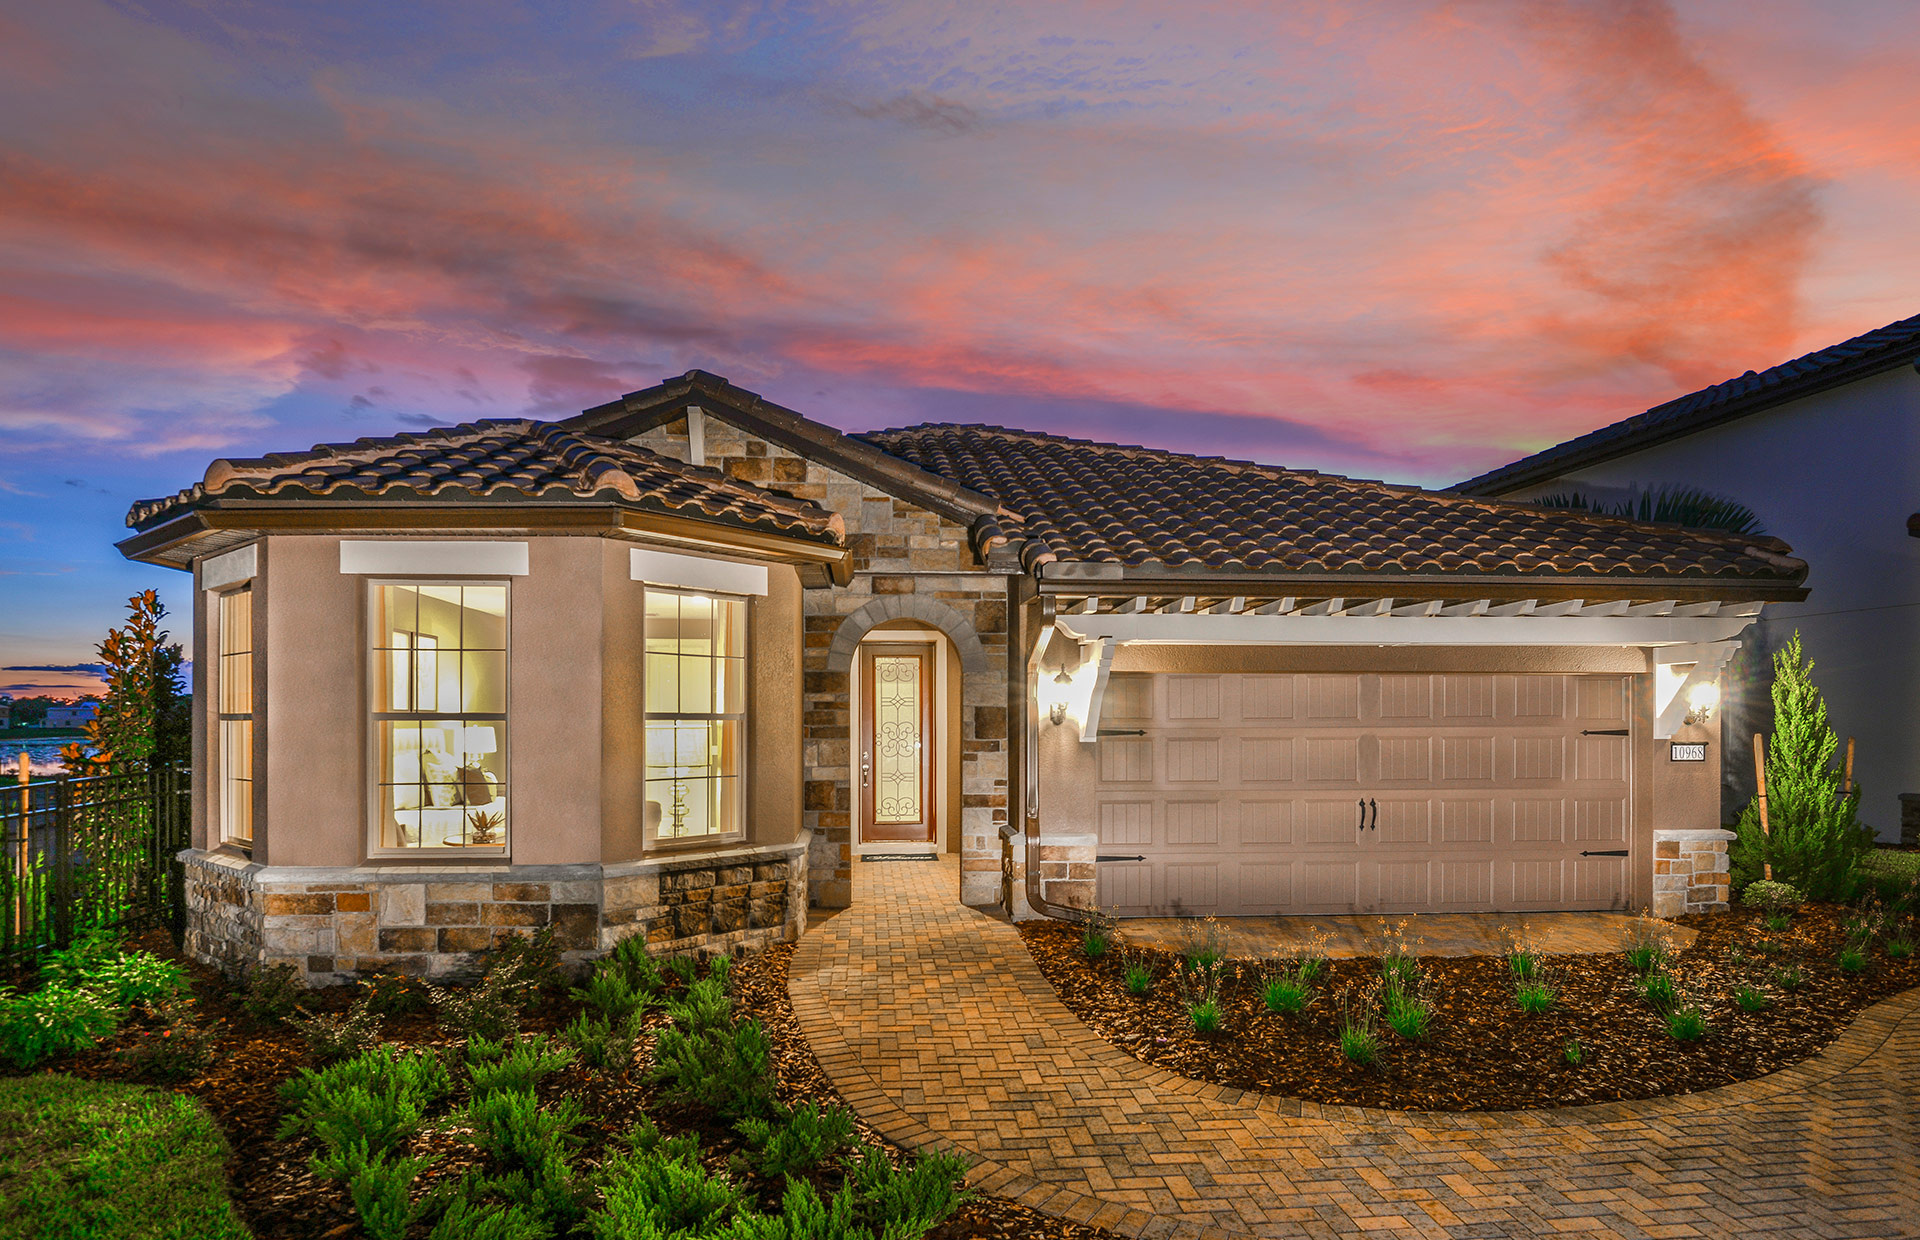 pulte homes research Discover new construction homes or master planned communities in austin tx  check out floor plans, pictures and  pulte homes open: m:10:00-6:00,tu:1.